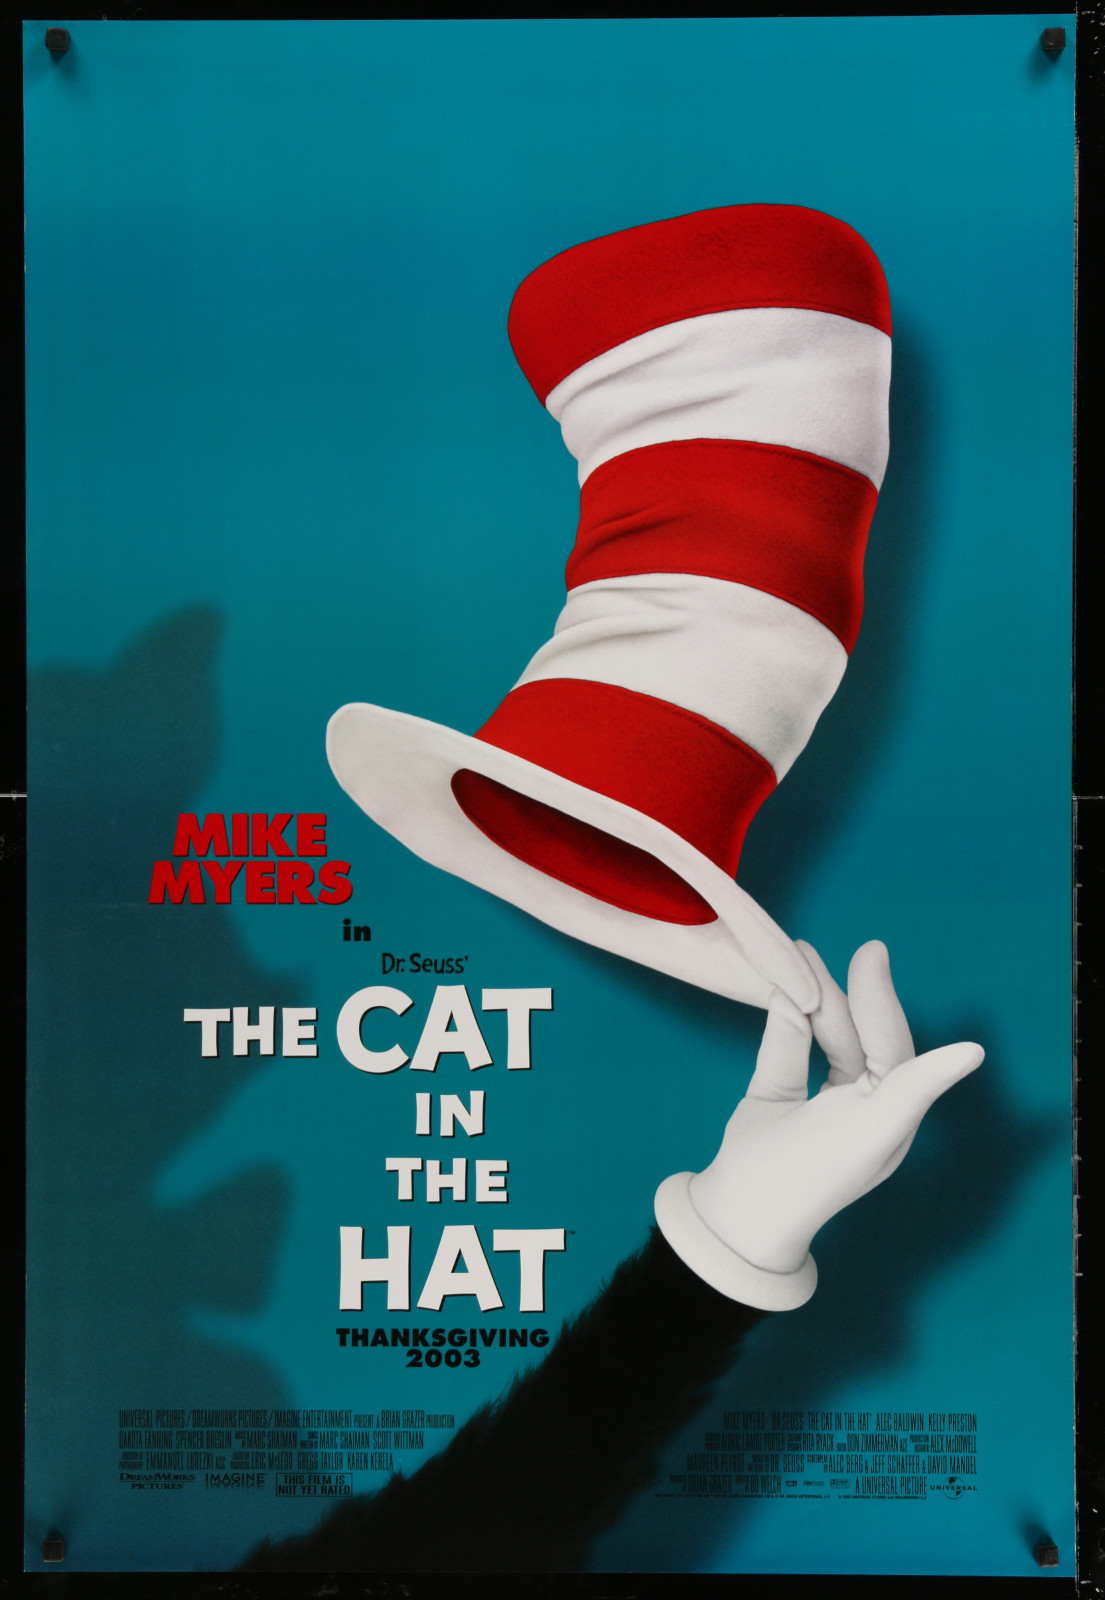 The Cat In The Hat 2A391 A Part Of A Lot 24 Unfolded Double-Sided 27X40 One-Sheets '90S-00S Great Movie Images!